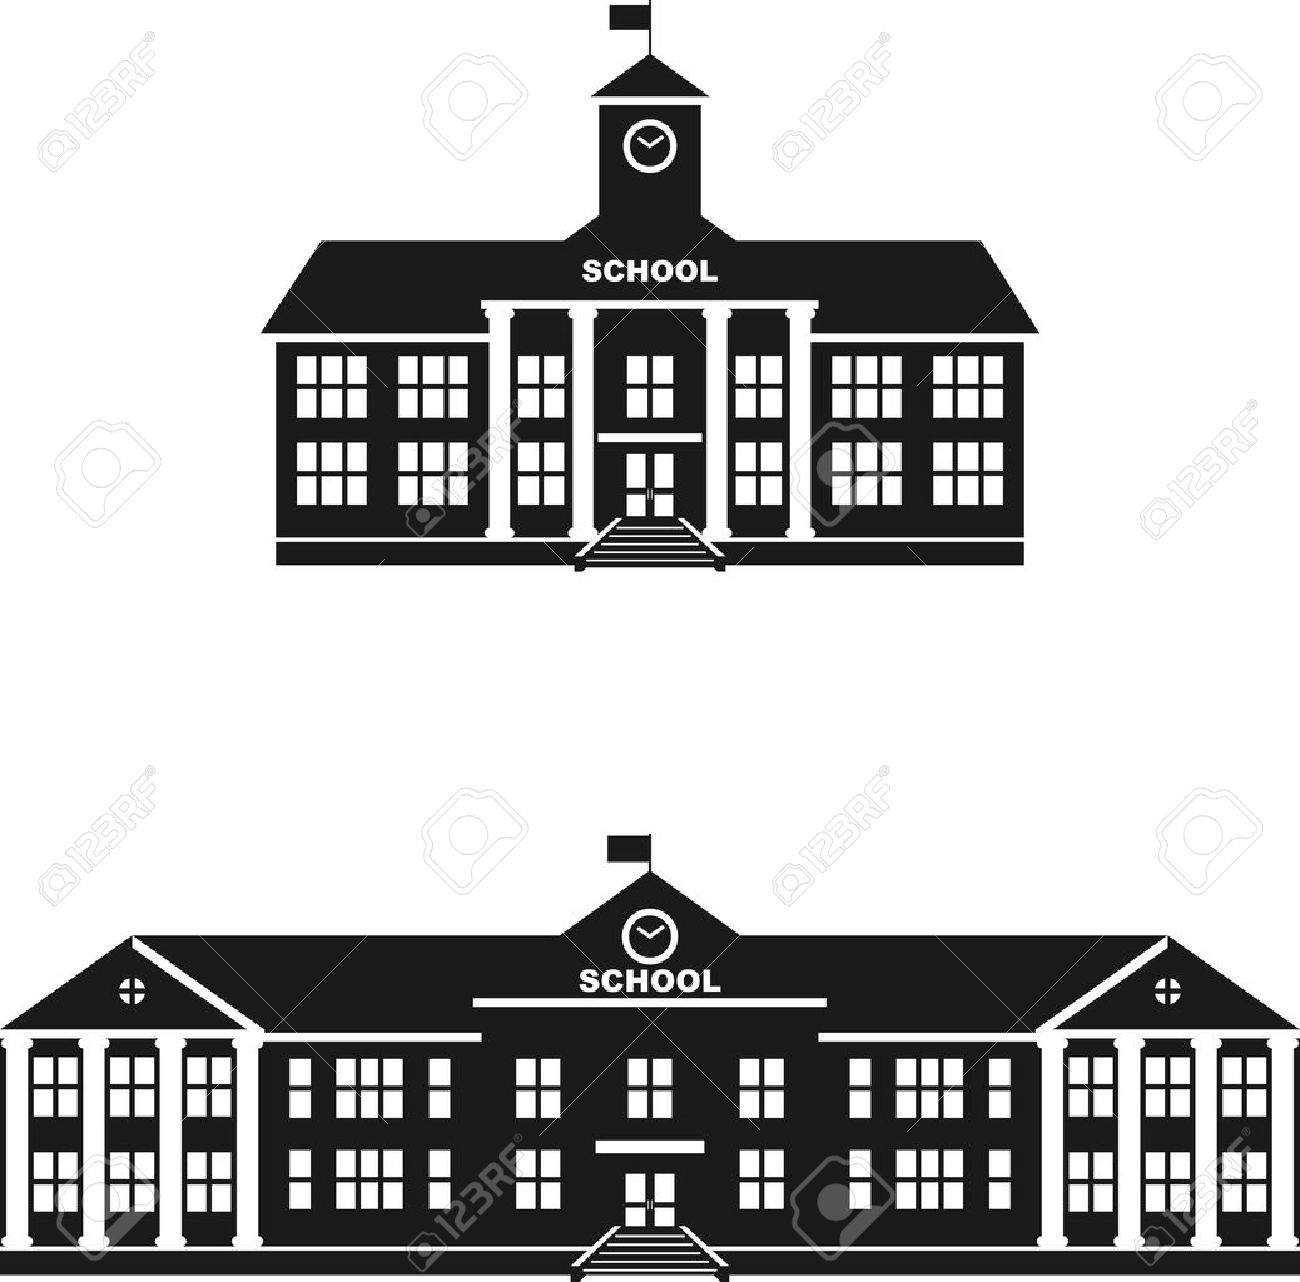 Silhouette illustration different variants of classical school building in a flat style. - 45504927